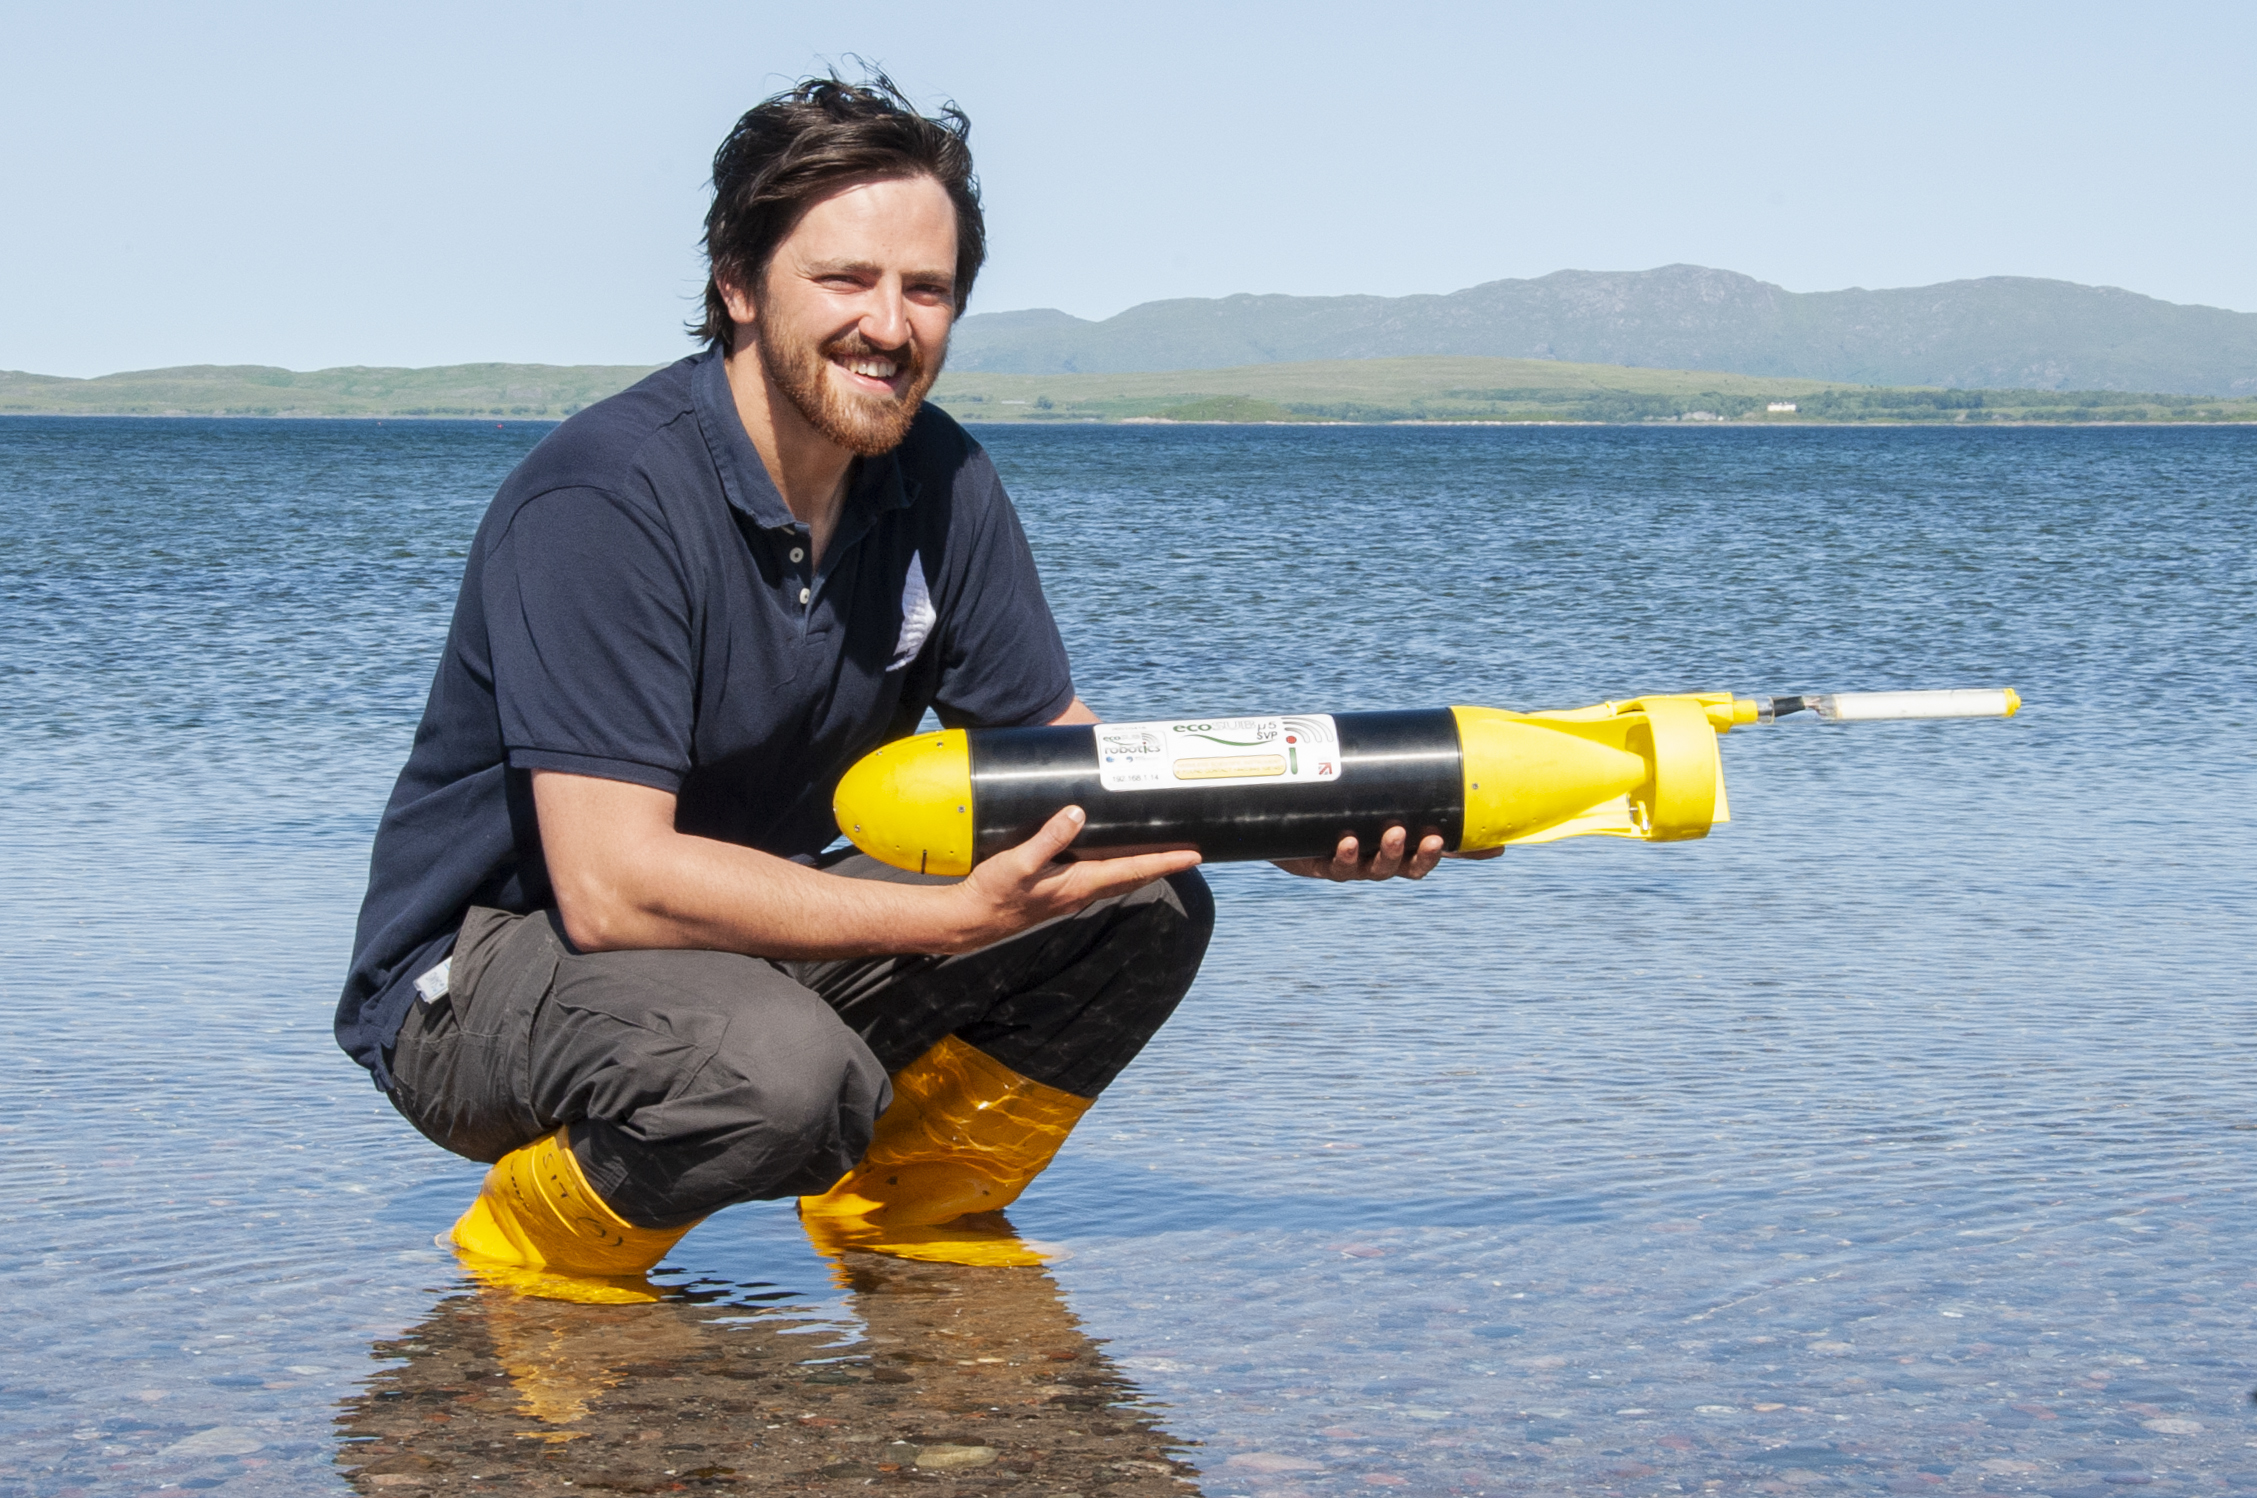 -University of the Highlands and Islands PhD student James Coogan will be deploying the ecoSUB on its mission into a hostile Arctic environment